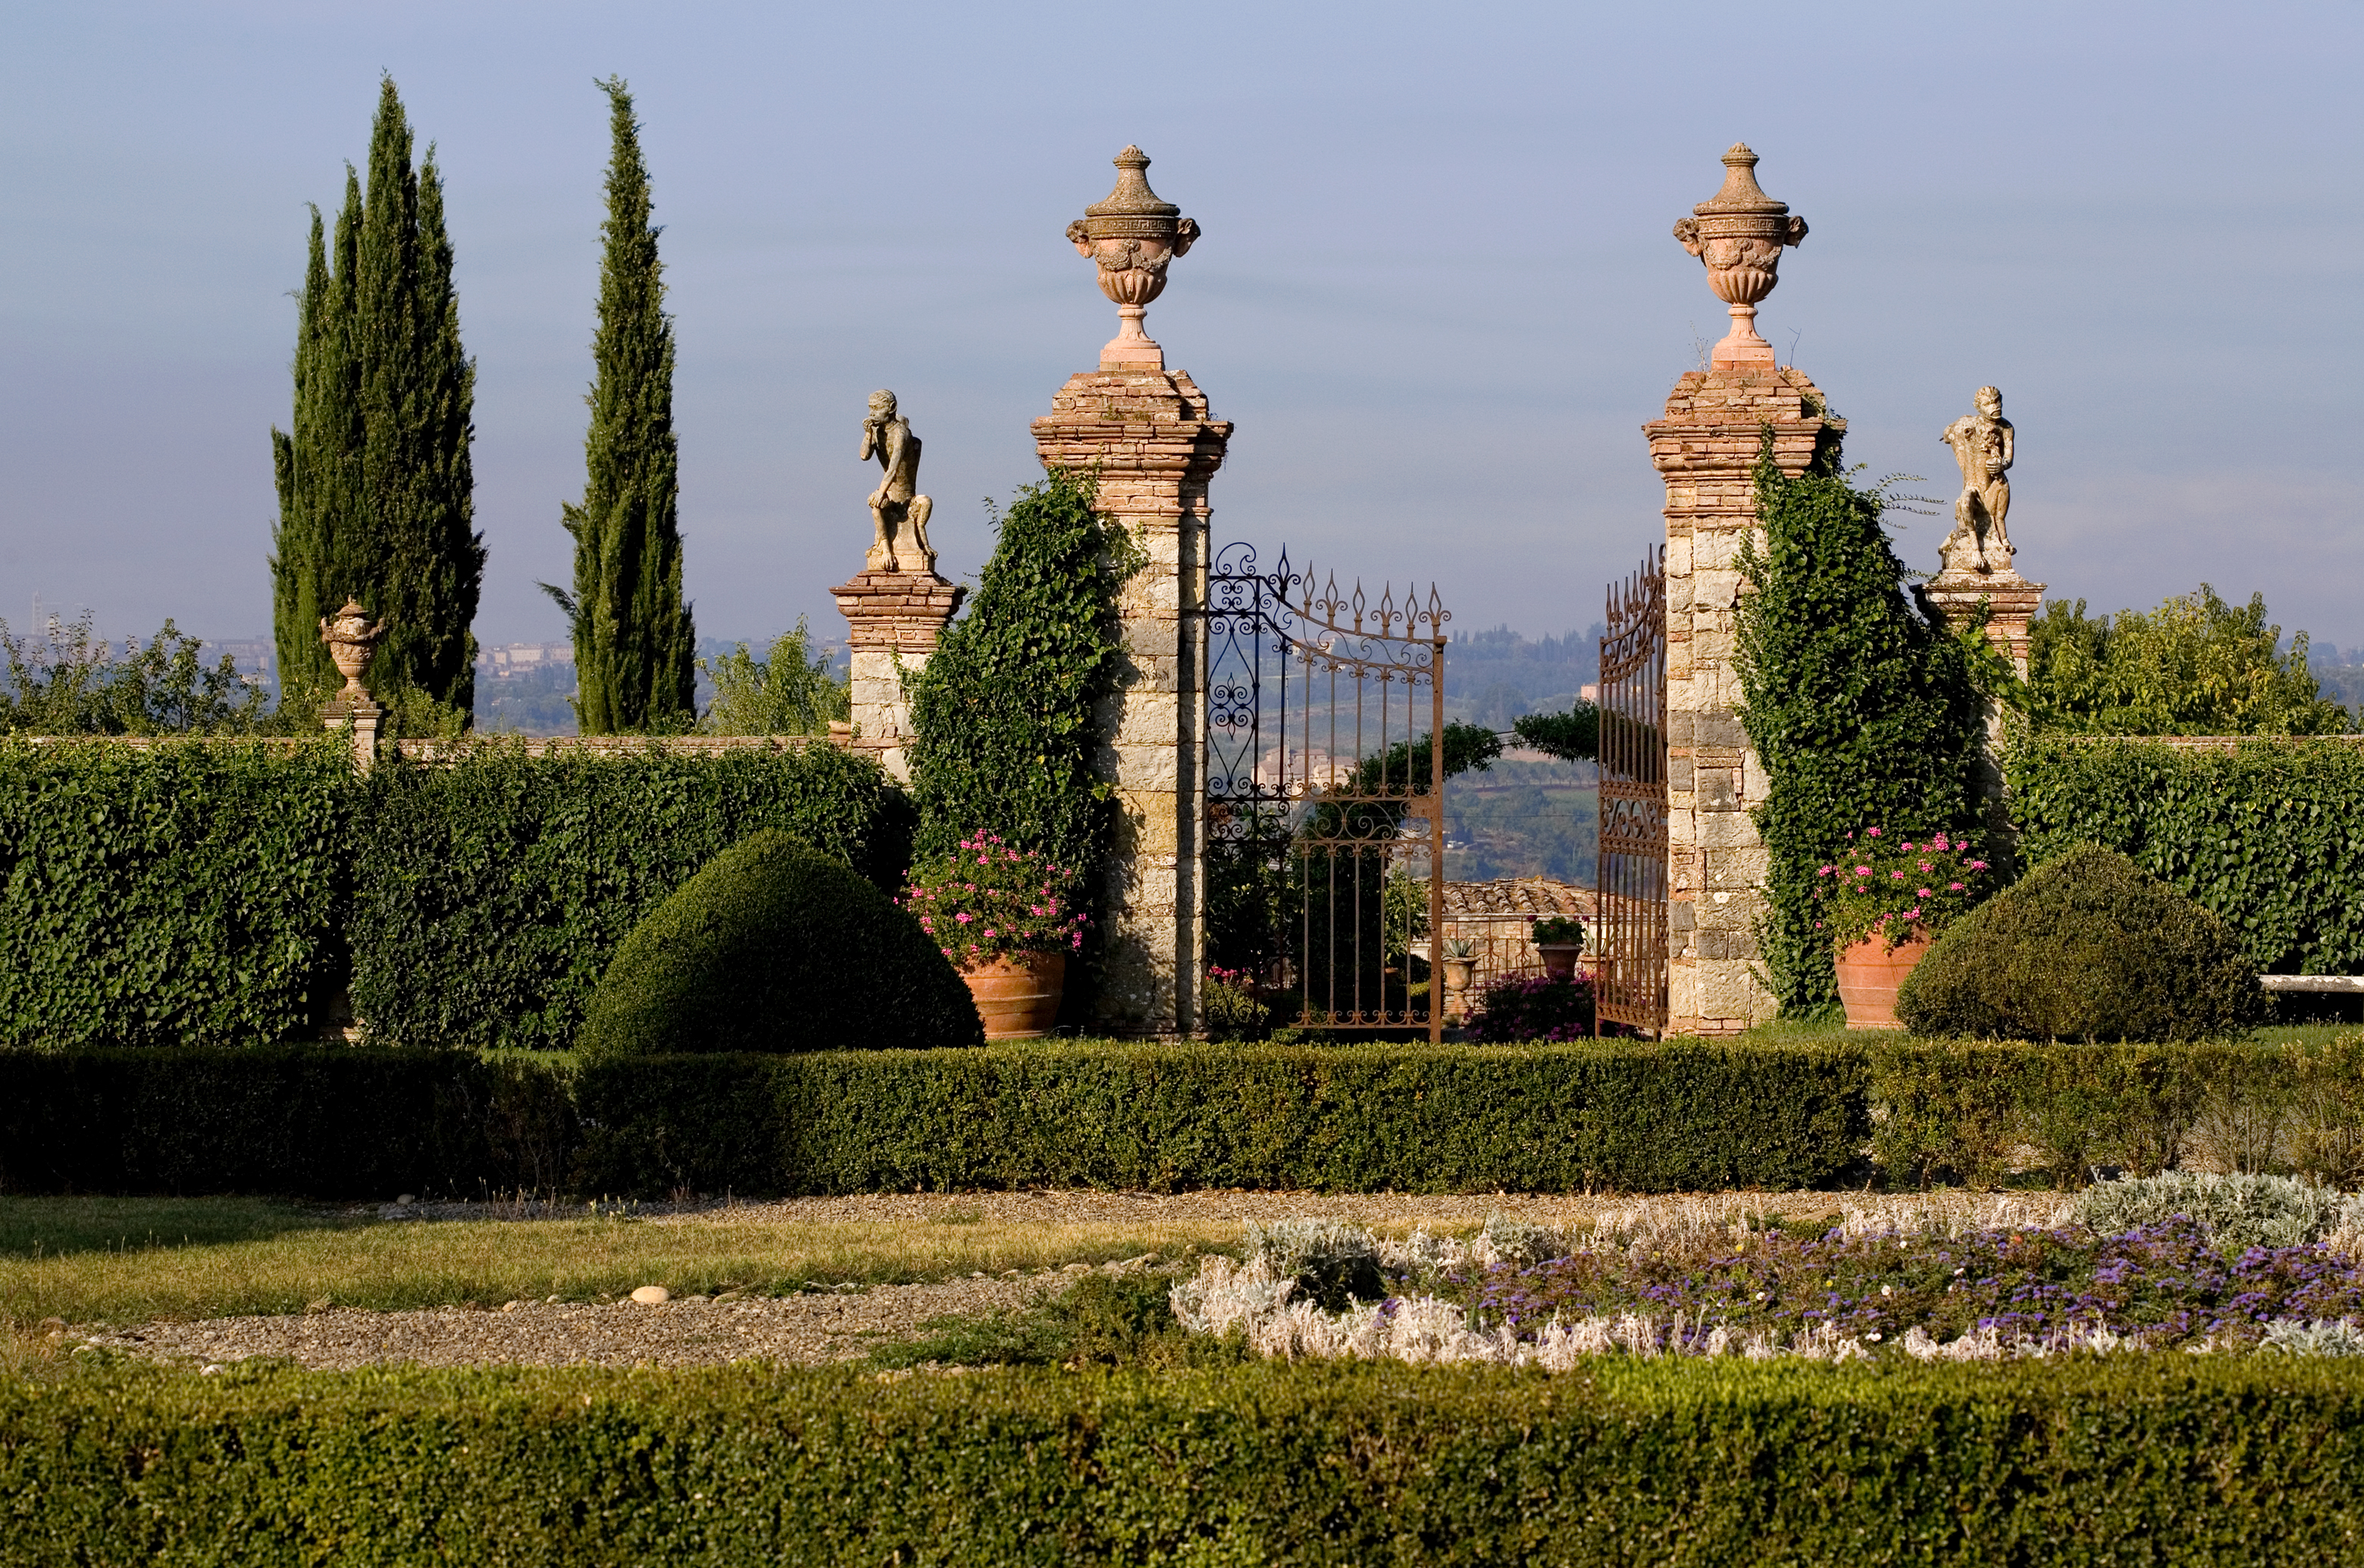 GARDENS IN ITALY